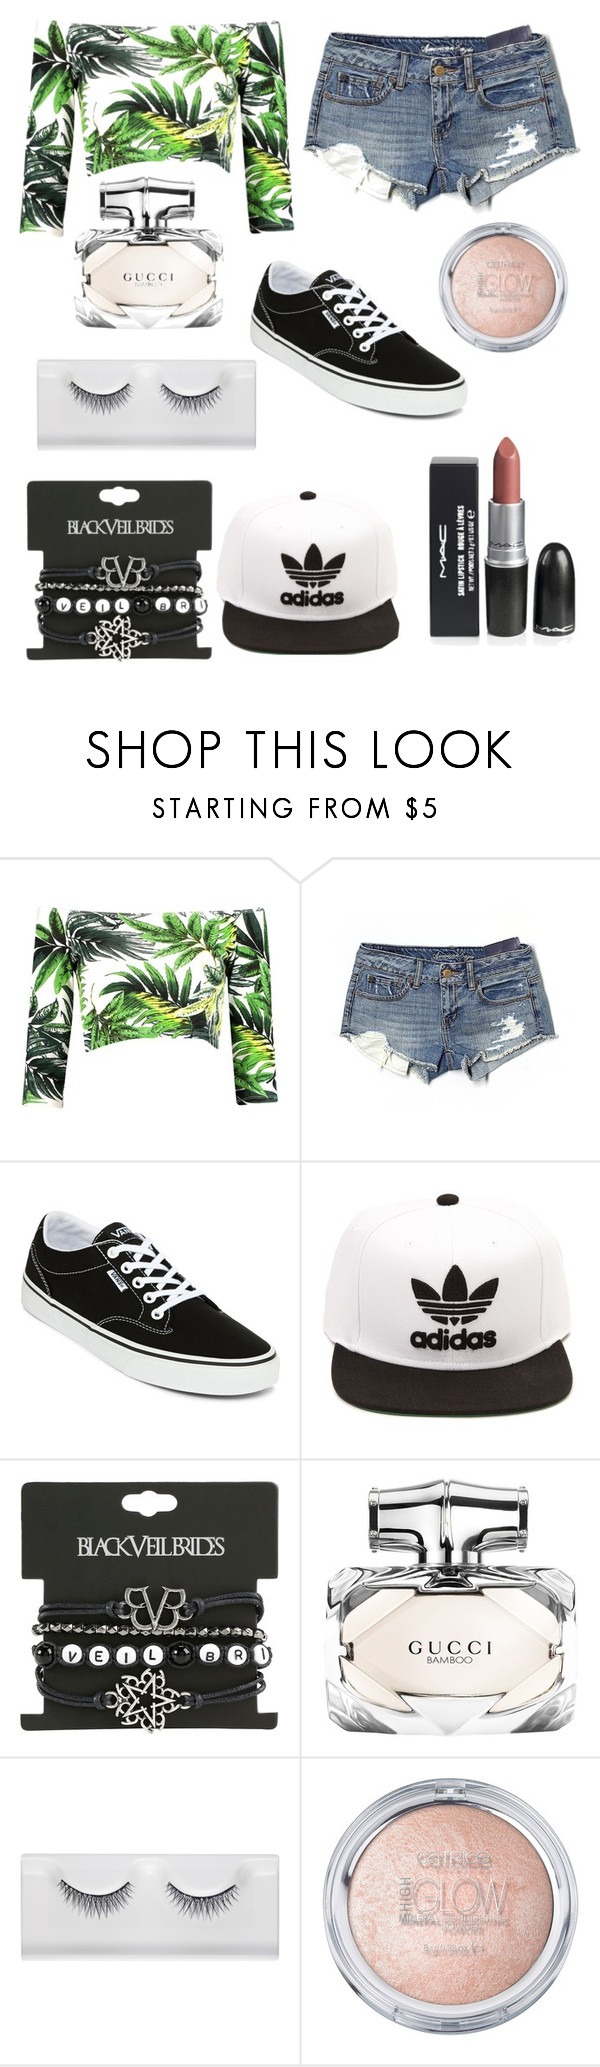 """I'm tired and can't sleep ugh"" by winchester-ashton ❤ liked on Polyvore featuring Boohoo, American Eagle Outfitters, Vans, adidas and Gucci"